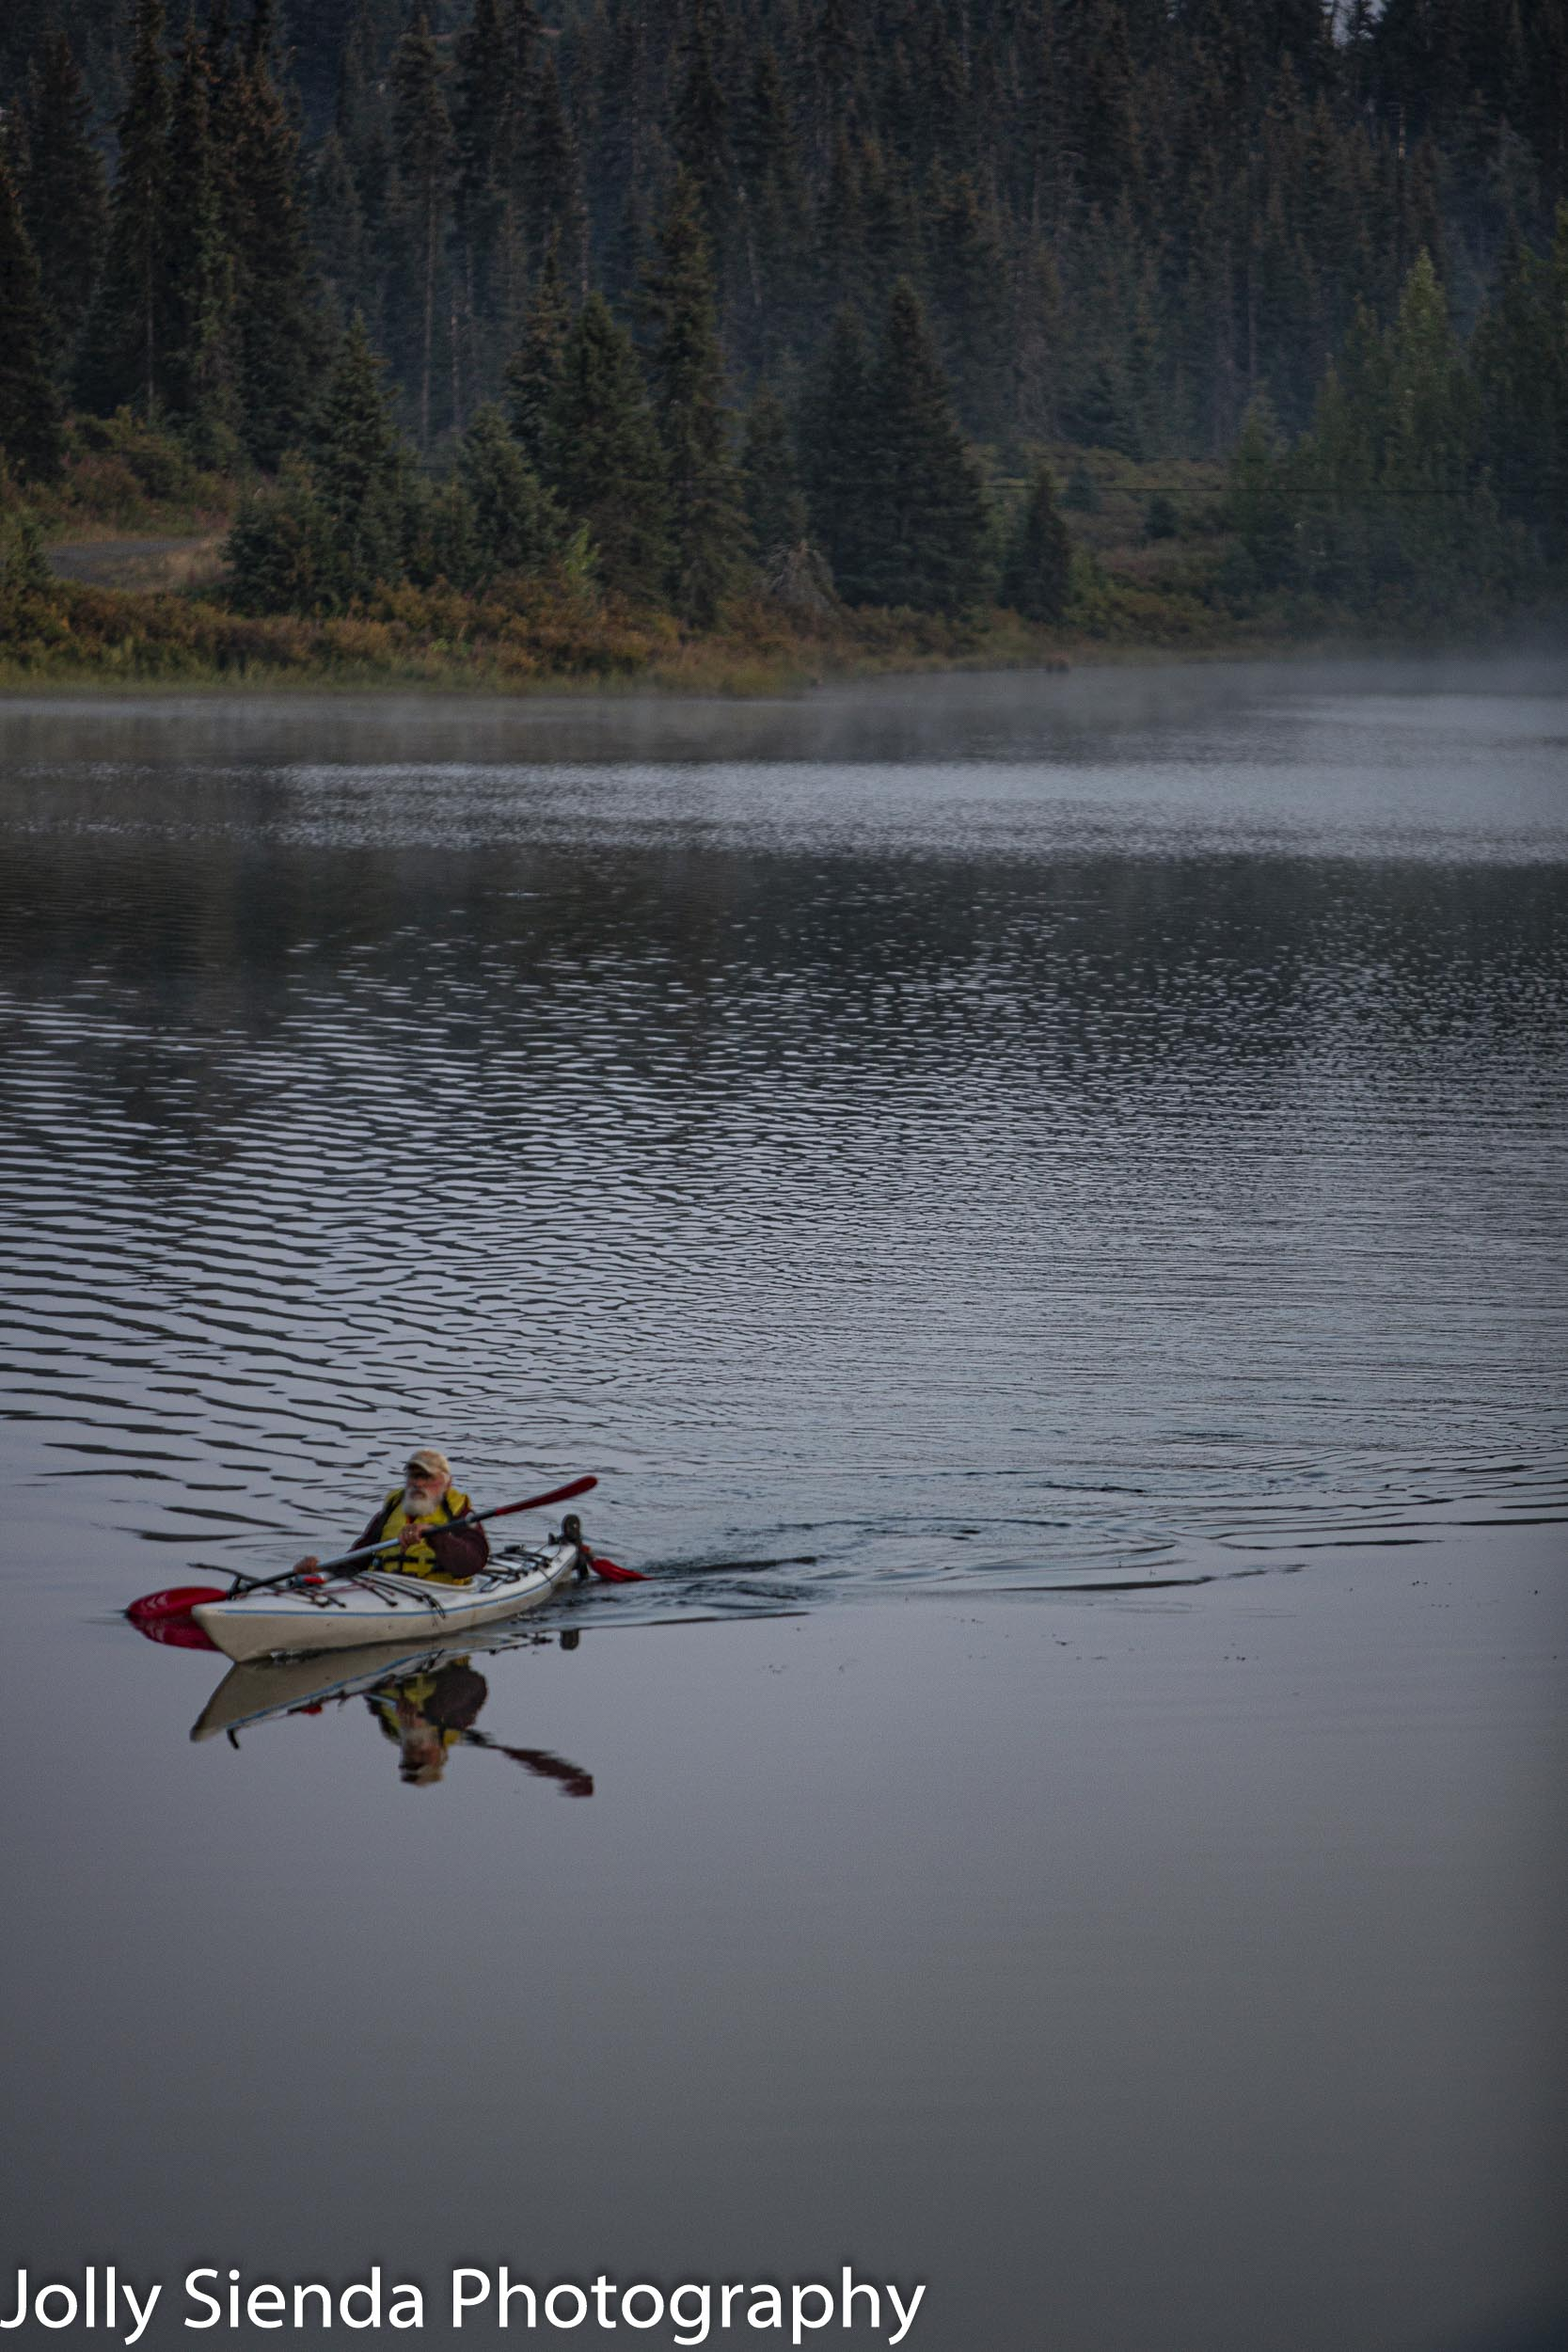 Kayaker on a lake in the Alaskan wilderness